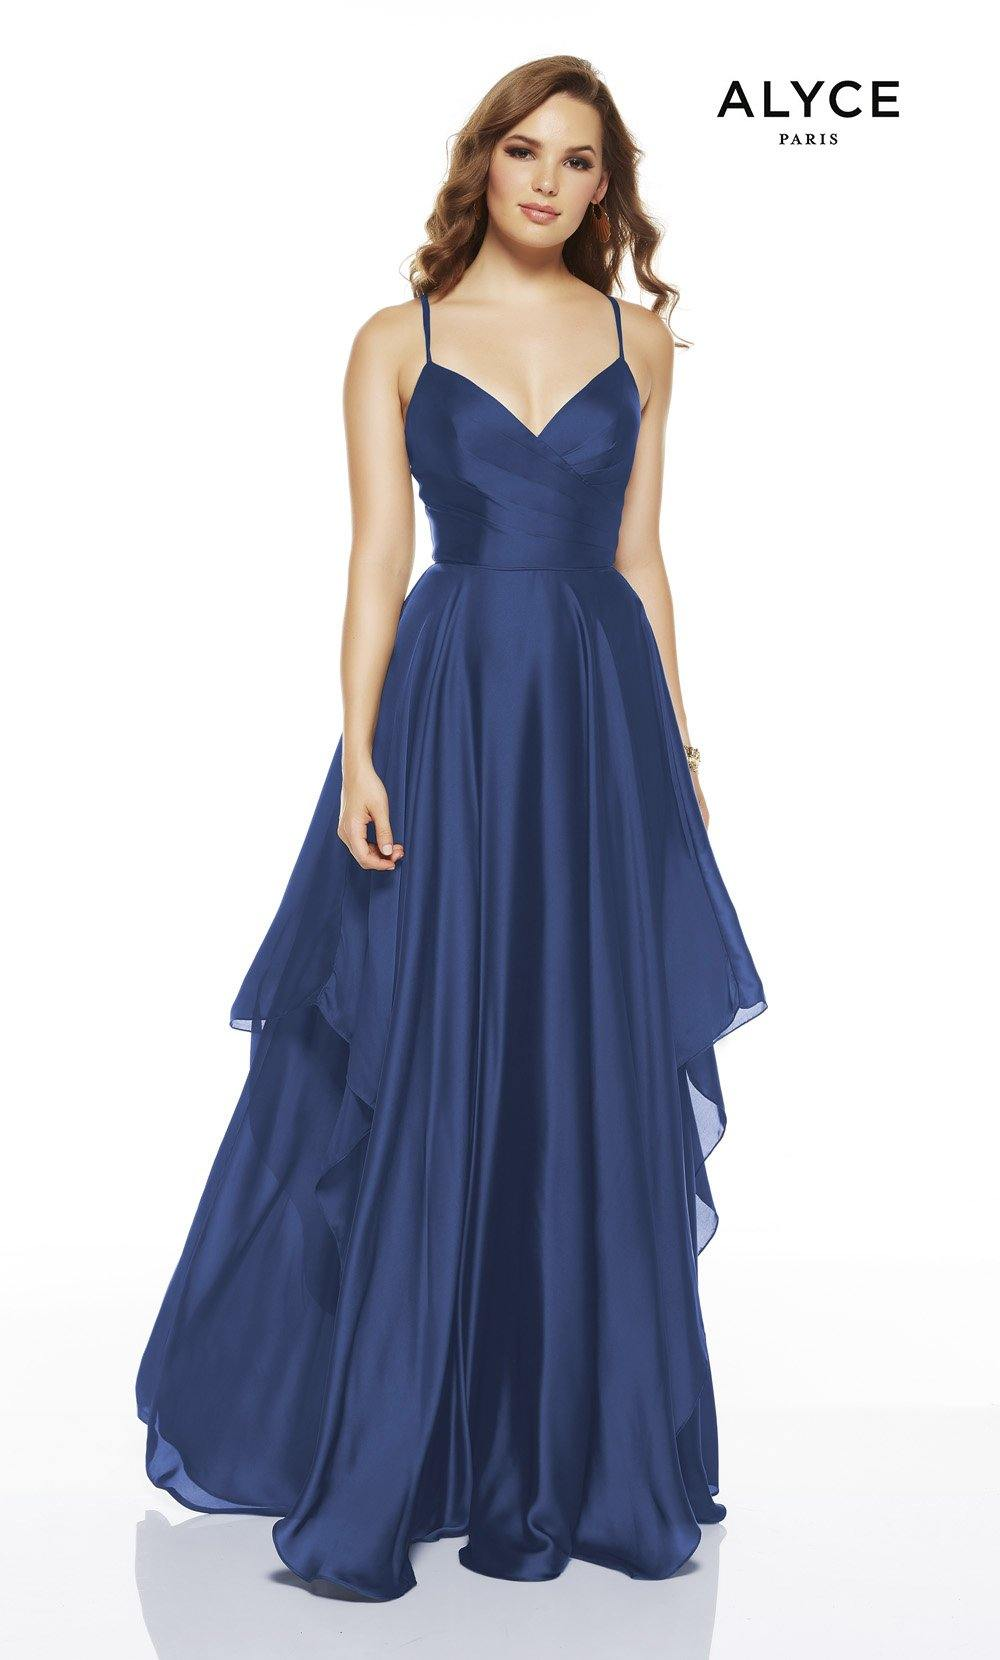 Cobalt flowy wedding guest dress with a V-neckline